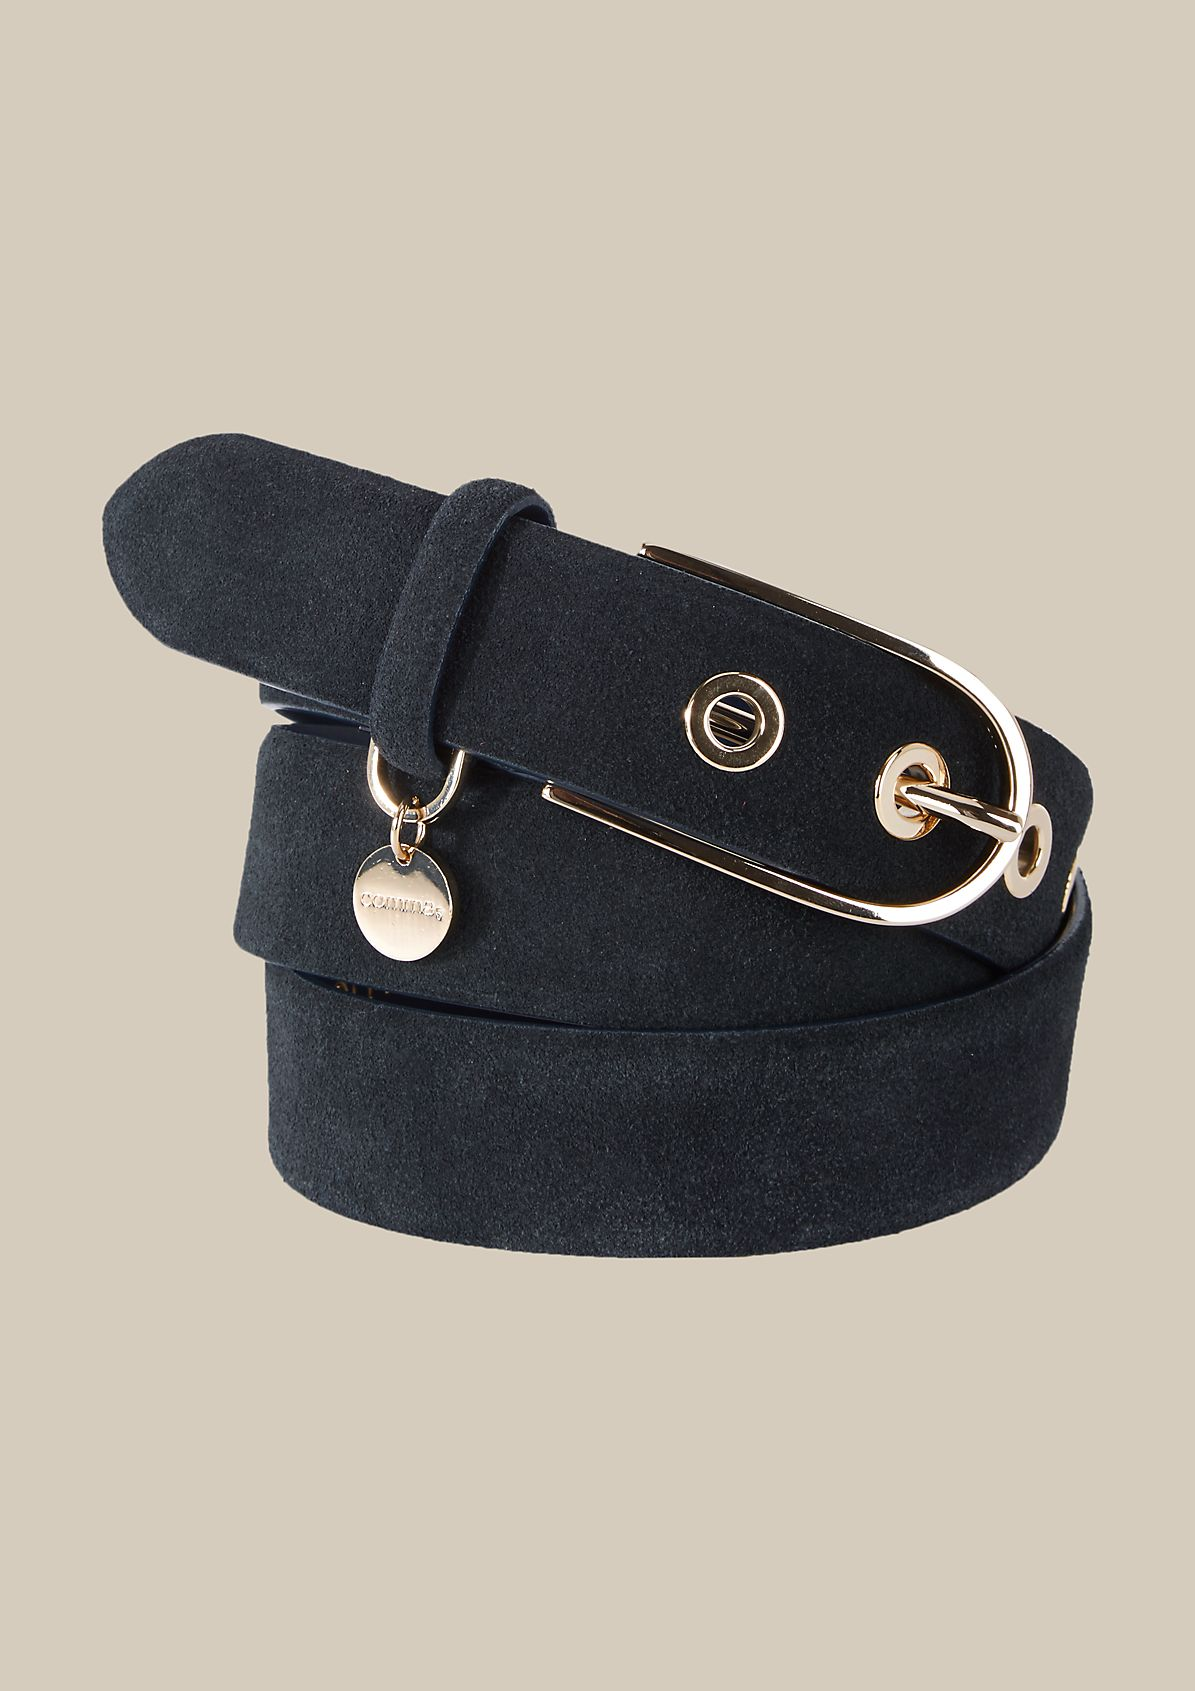 Wide leather belt with a suede finish from s.Oliver